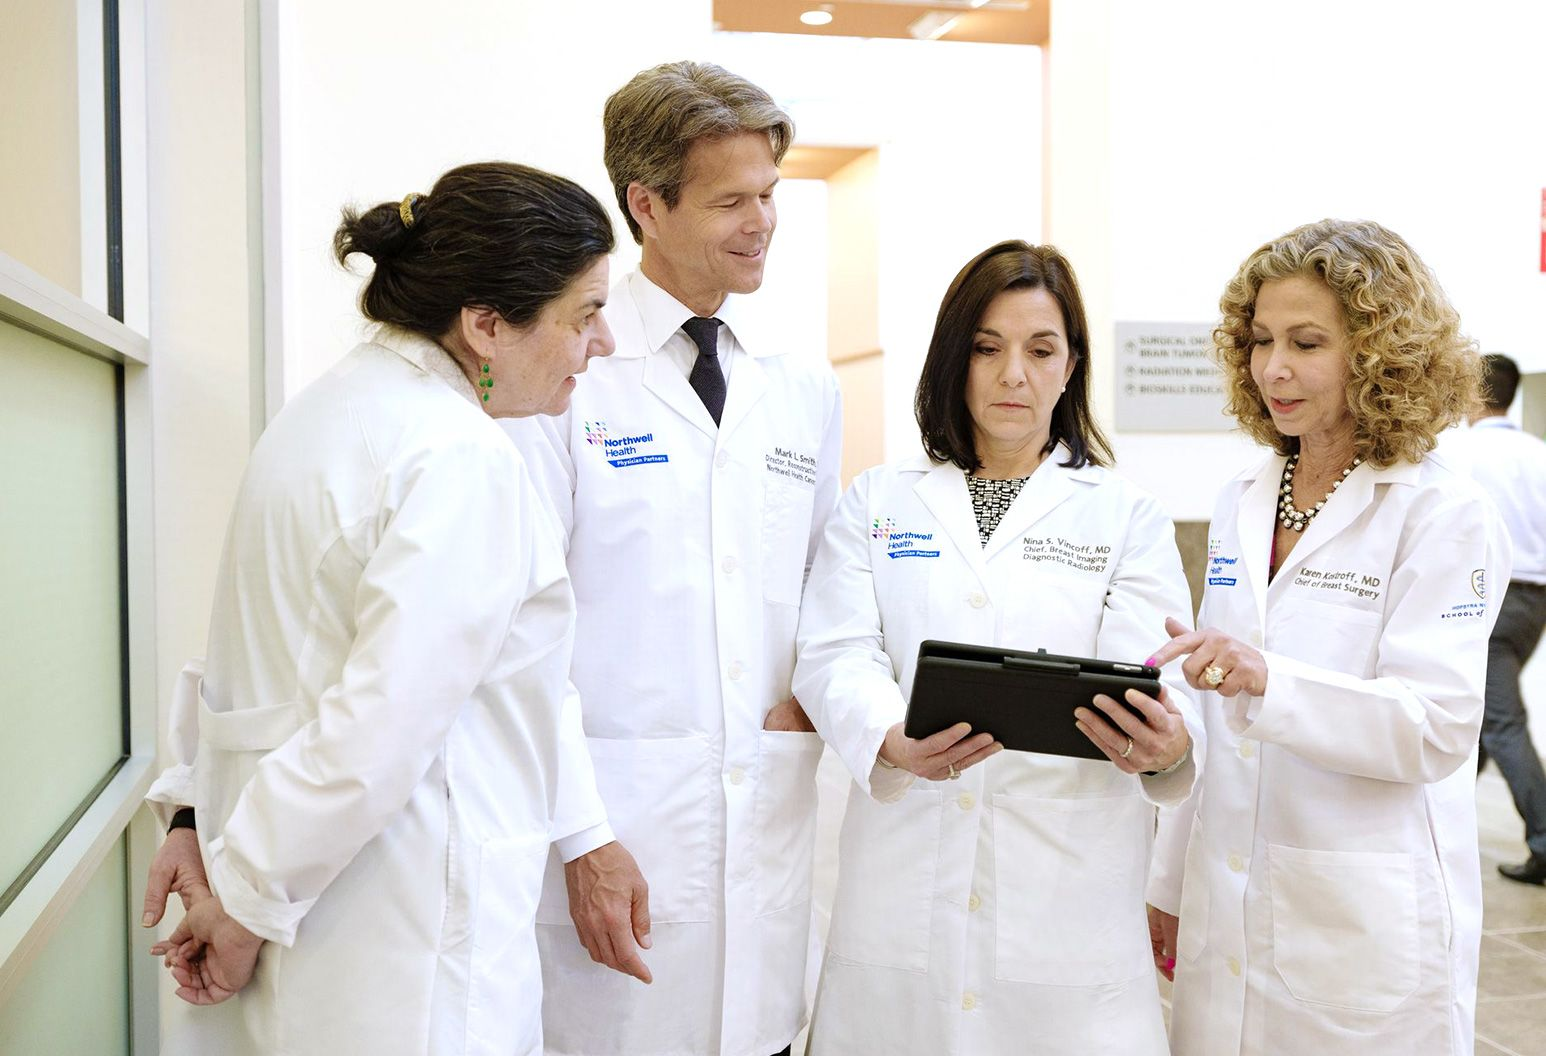 3 female doctors and 1 male doctor all wearing white lab coasts, stand together while looking at a patient chart.